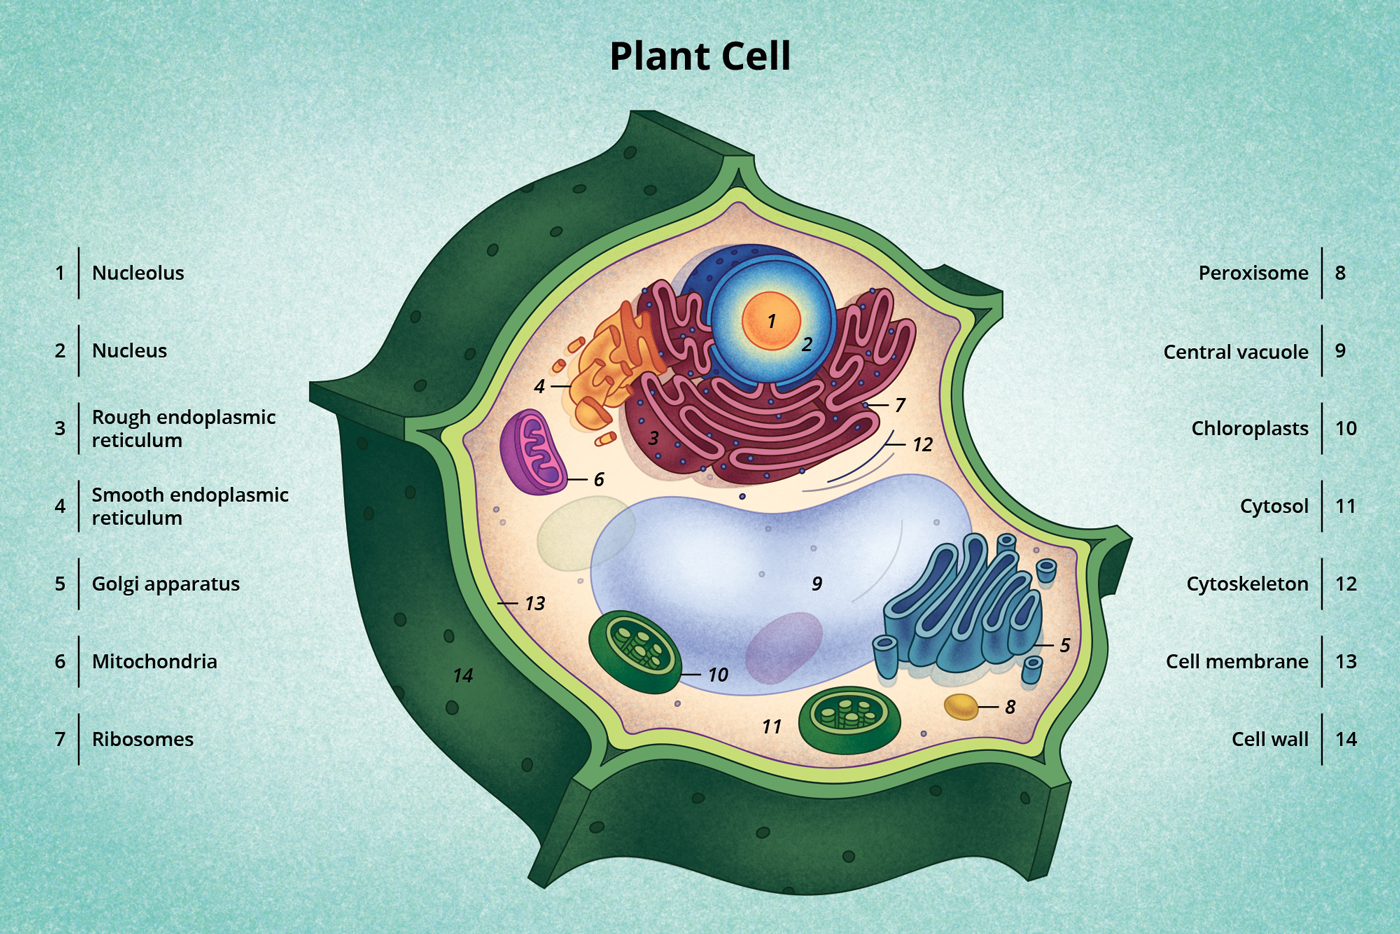 Discovery And Structure Of Cells Biology Visionlearning Figure 1 Schematic Diagram A Prokaryotic Cell 6 Typical Plant